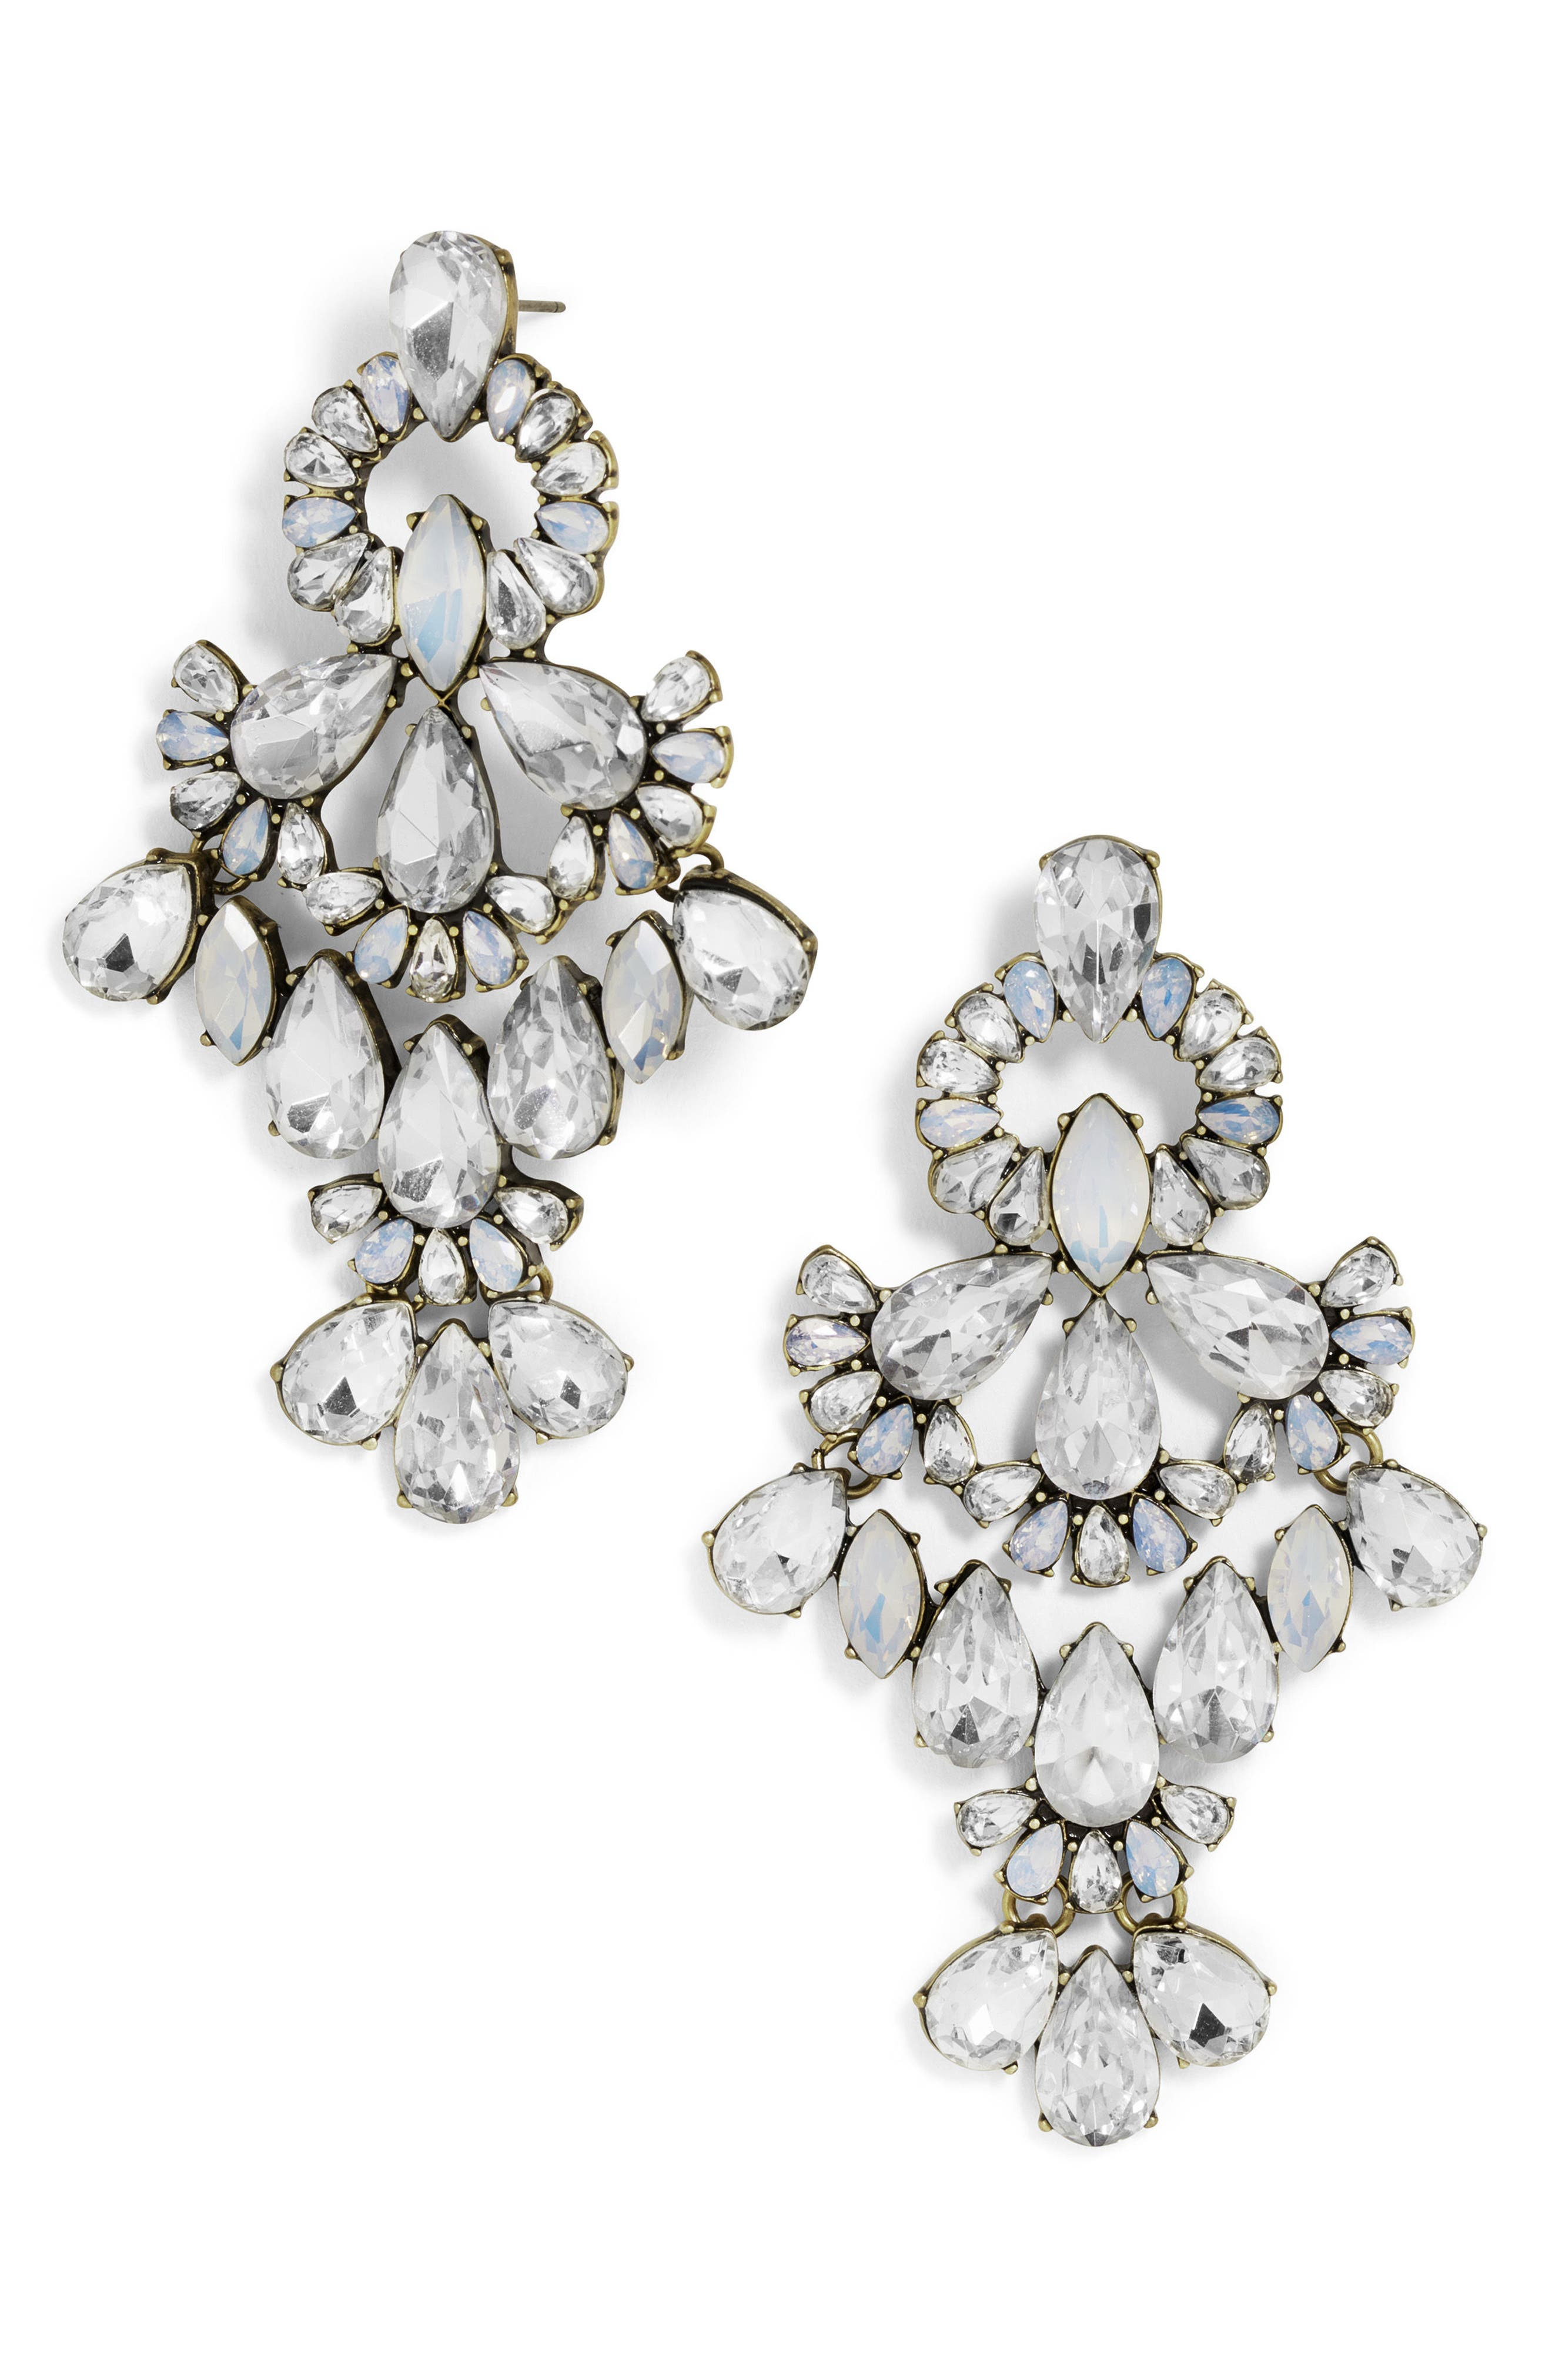 Symphony Crystal Statement Earrings,                         Main,                         color, 040